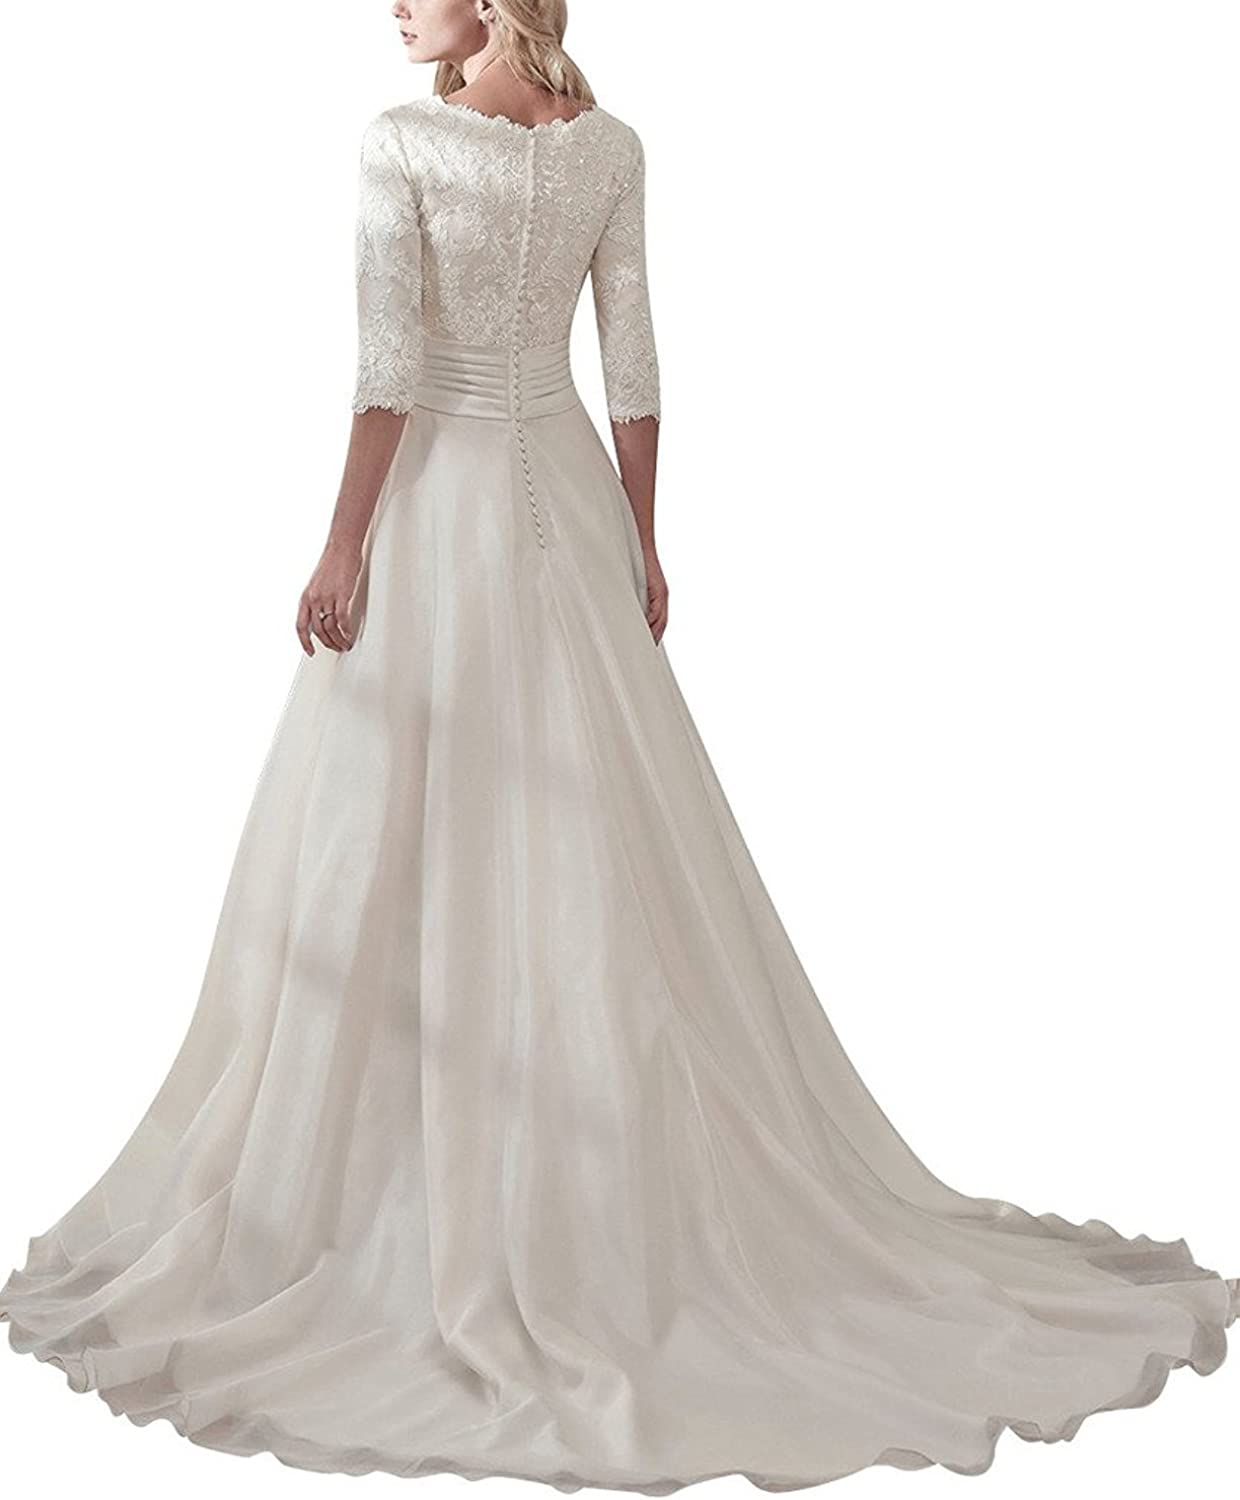 Lace Wedding Dress V Neck Bridal Dresses Aline Bridal Gowns Long Wedding Gowns At Amazon Women S Clothing Store